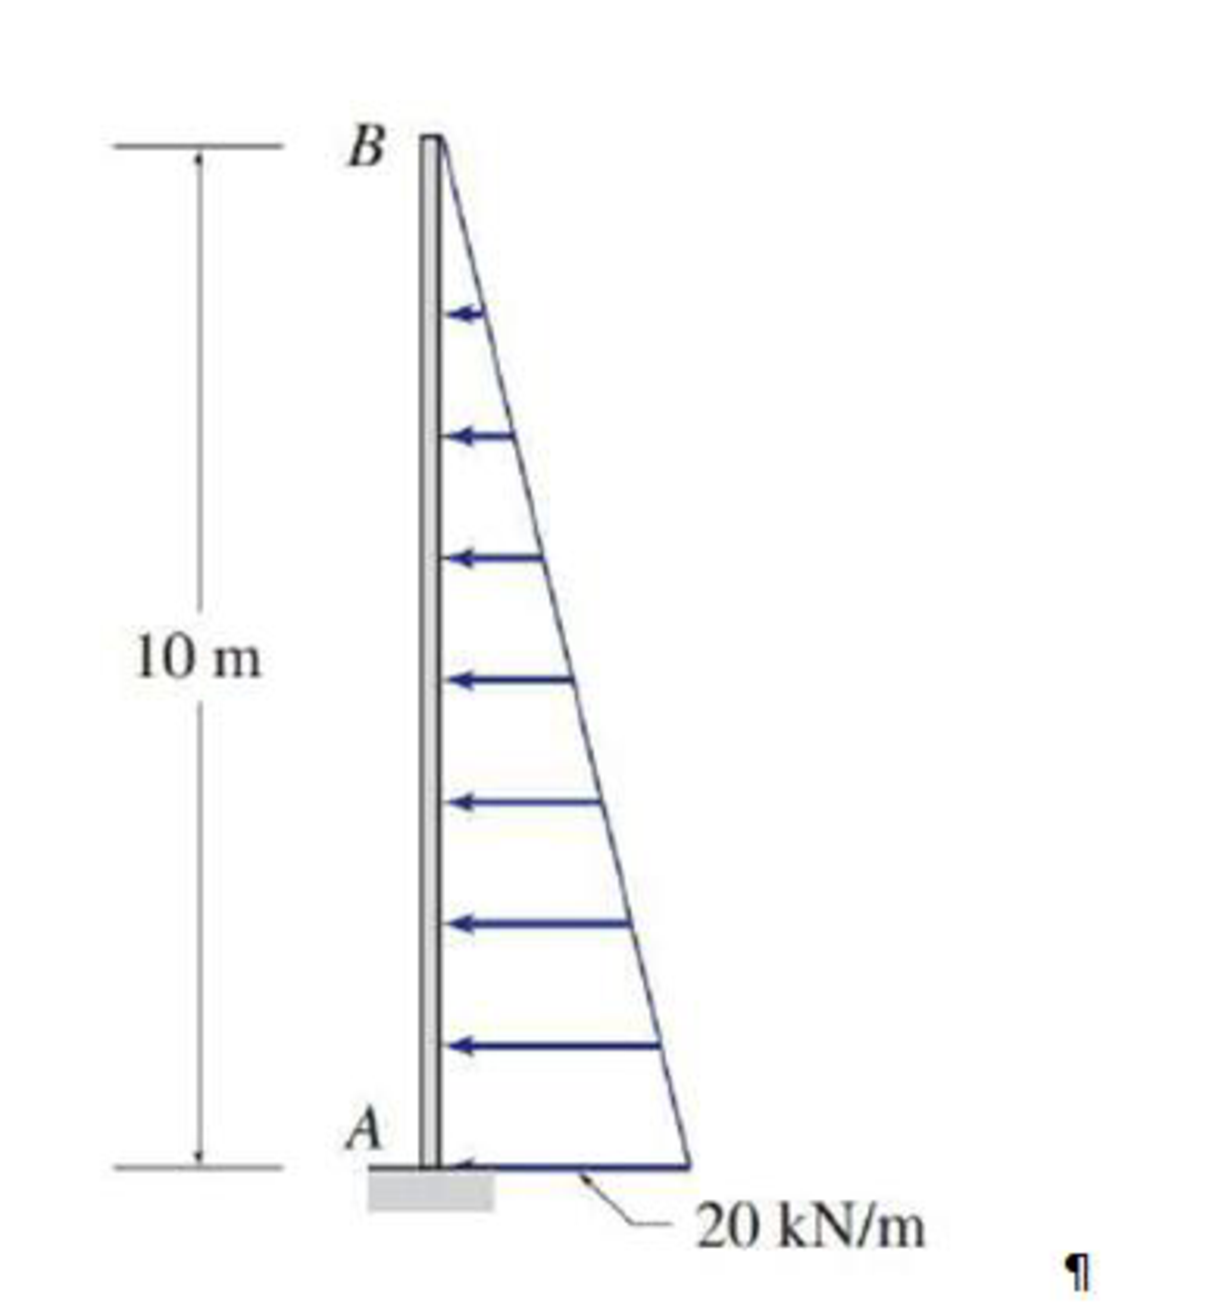 Chapter 3, Problem 7P, Determine the reactions at the supports for the structures beam shown.